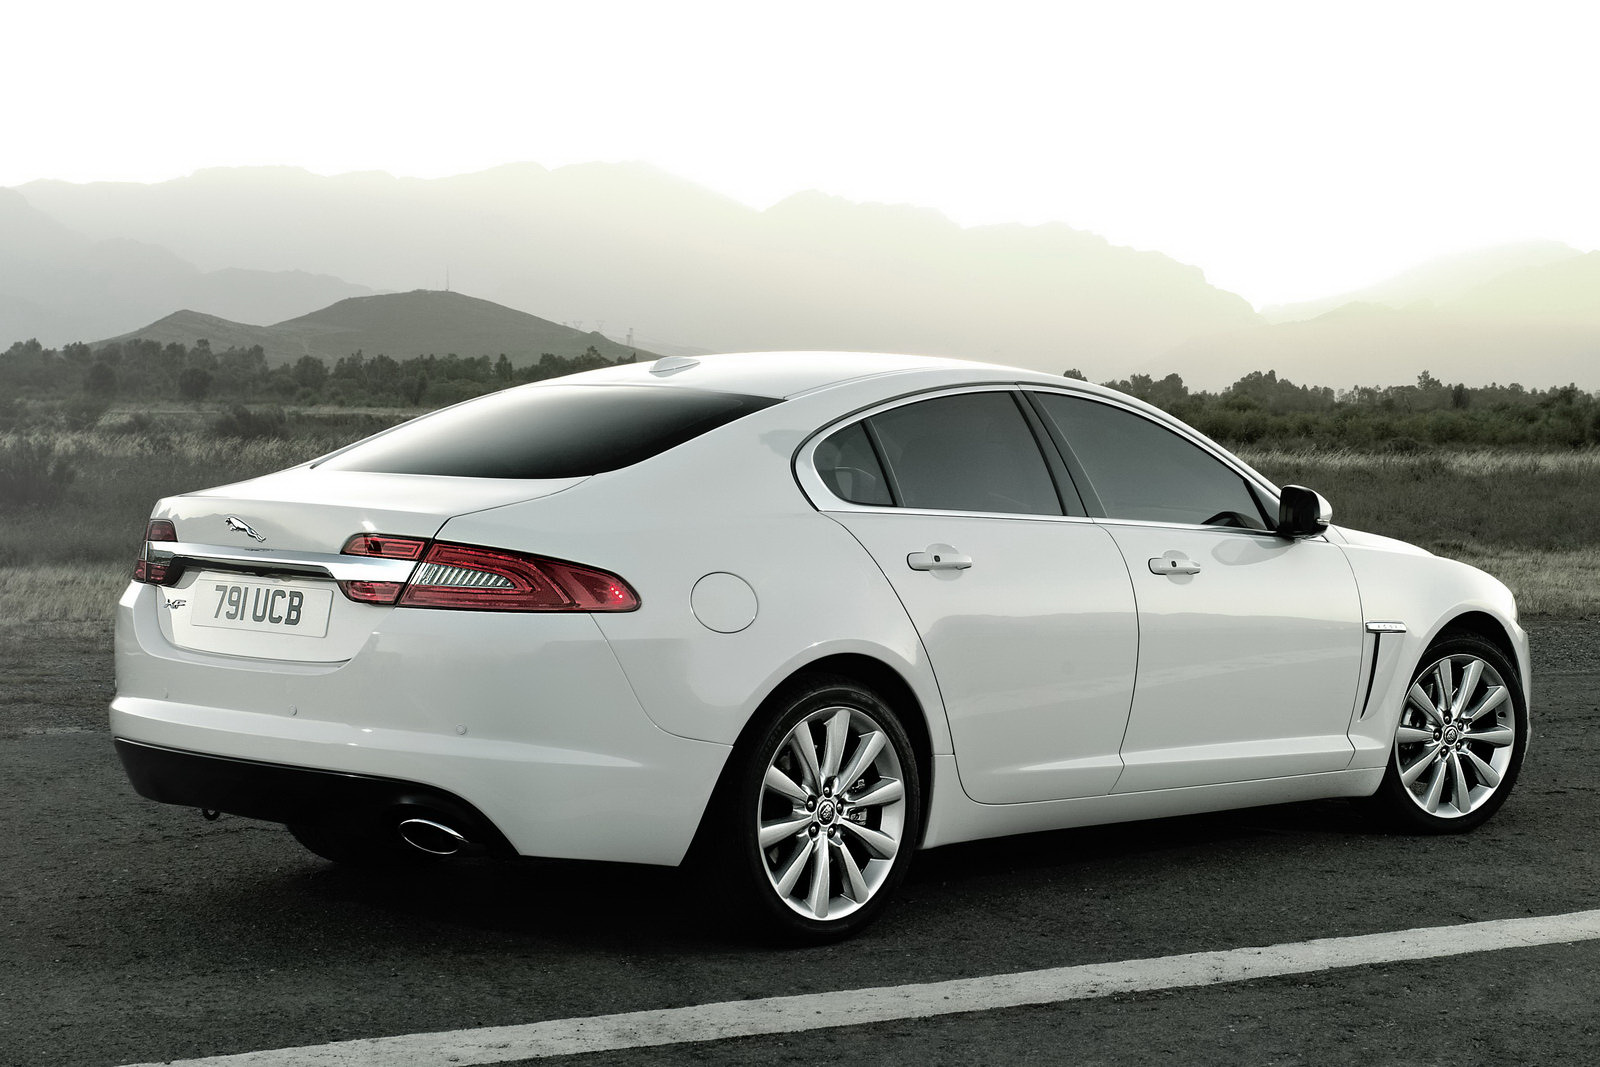 2012 Jaguar XF Update Unveiled Ahead Of Australian Debut Wallpaper Download